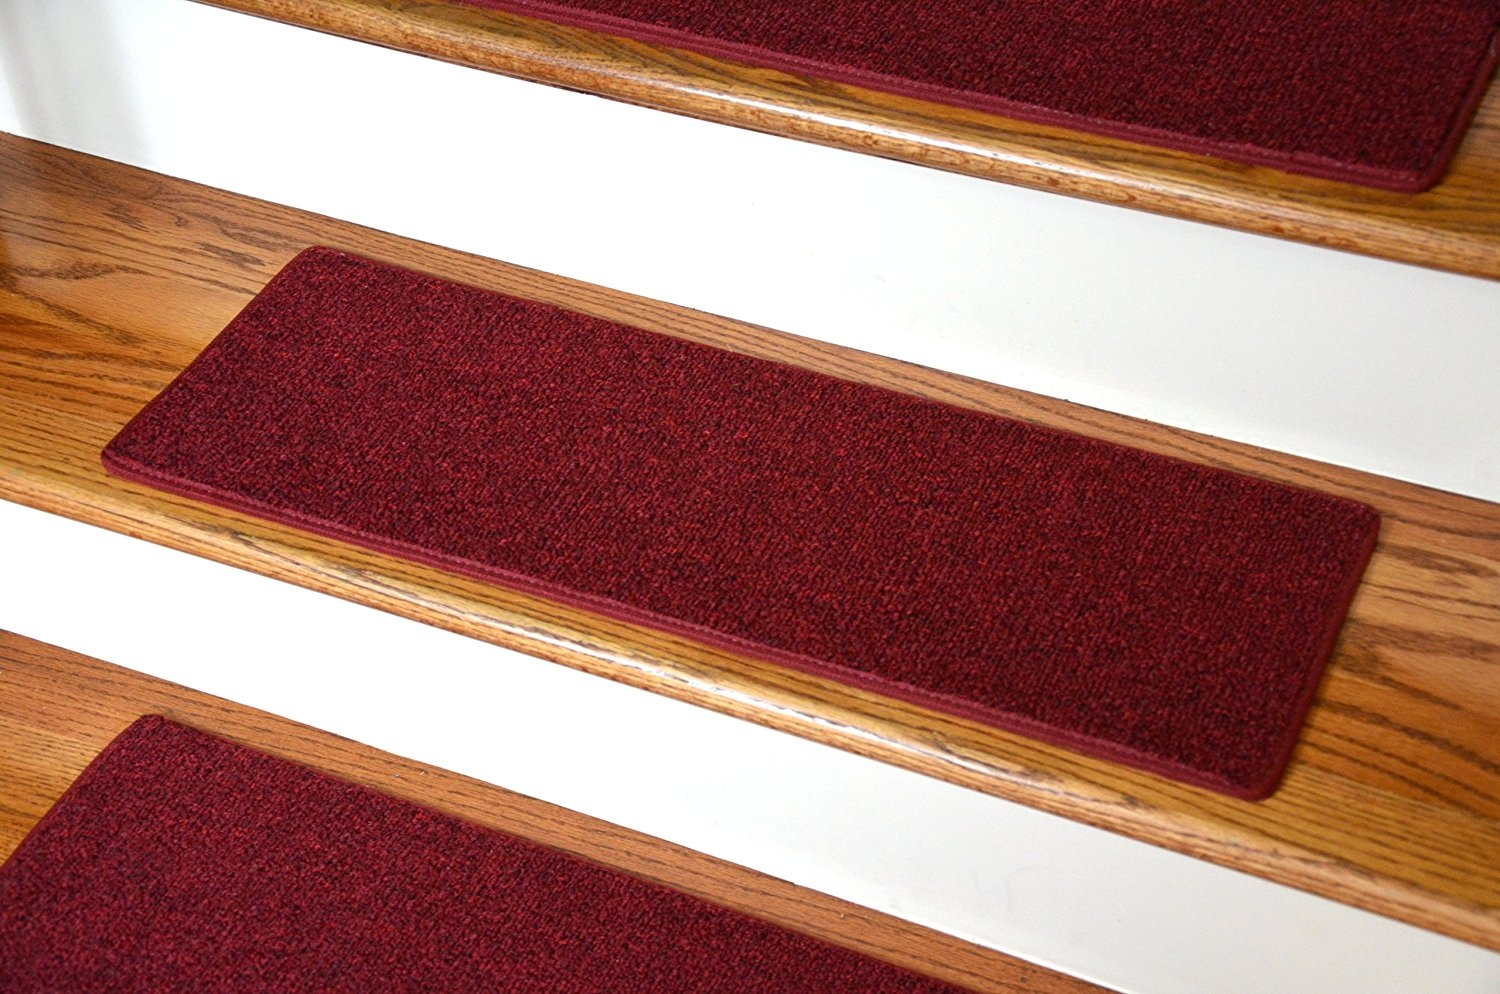 Dean Non Slip Tape Free Pet Friendly Diy Carpet Stair Treadsrugs Throughout Carpet Stair Treads Non Slip (View 11 of 20)